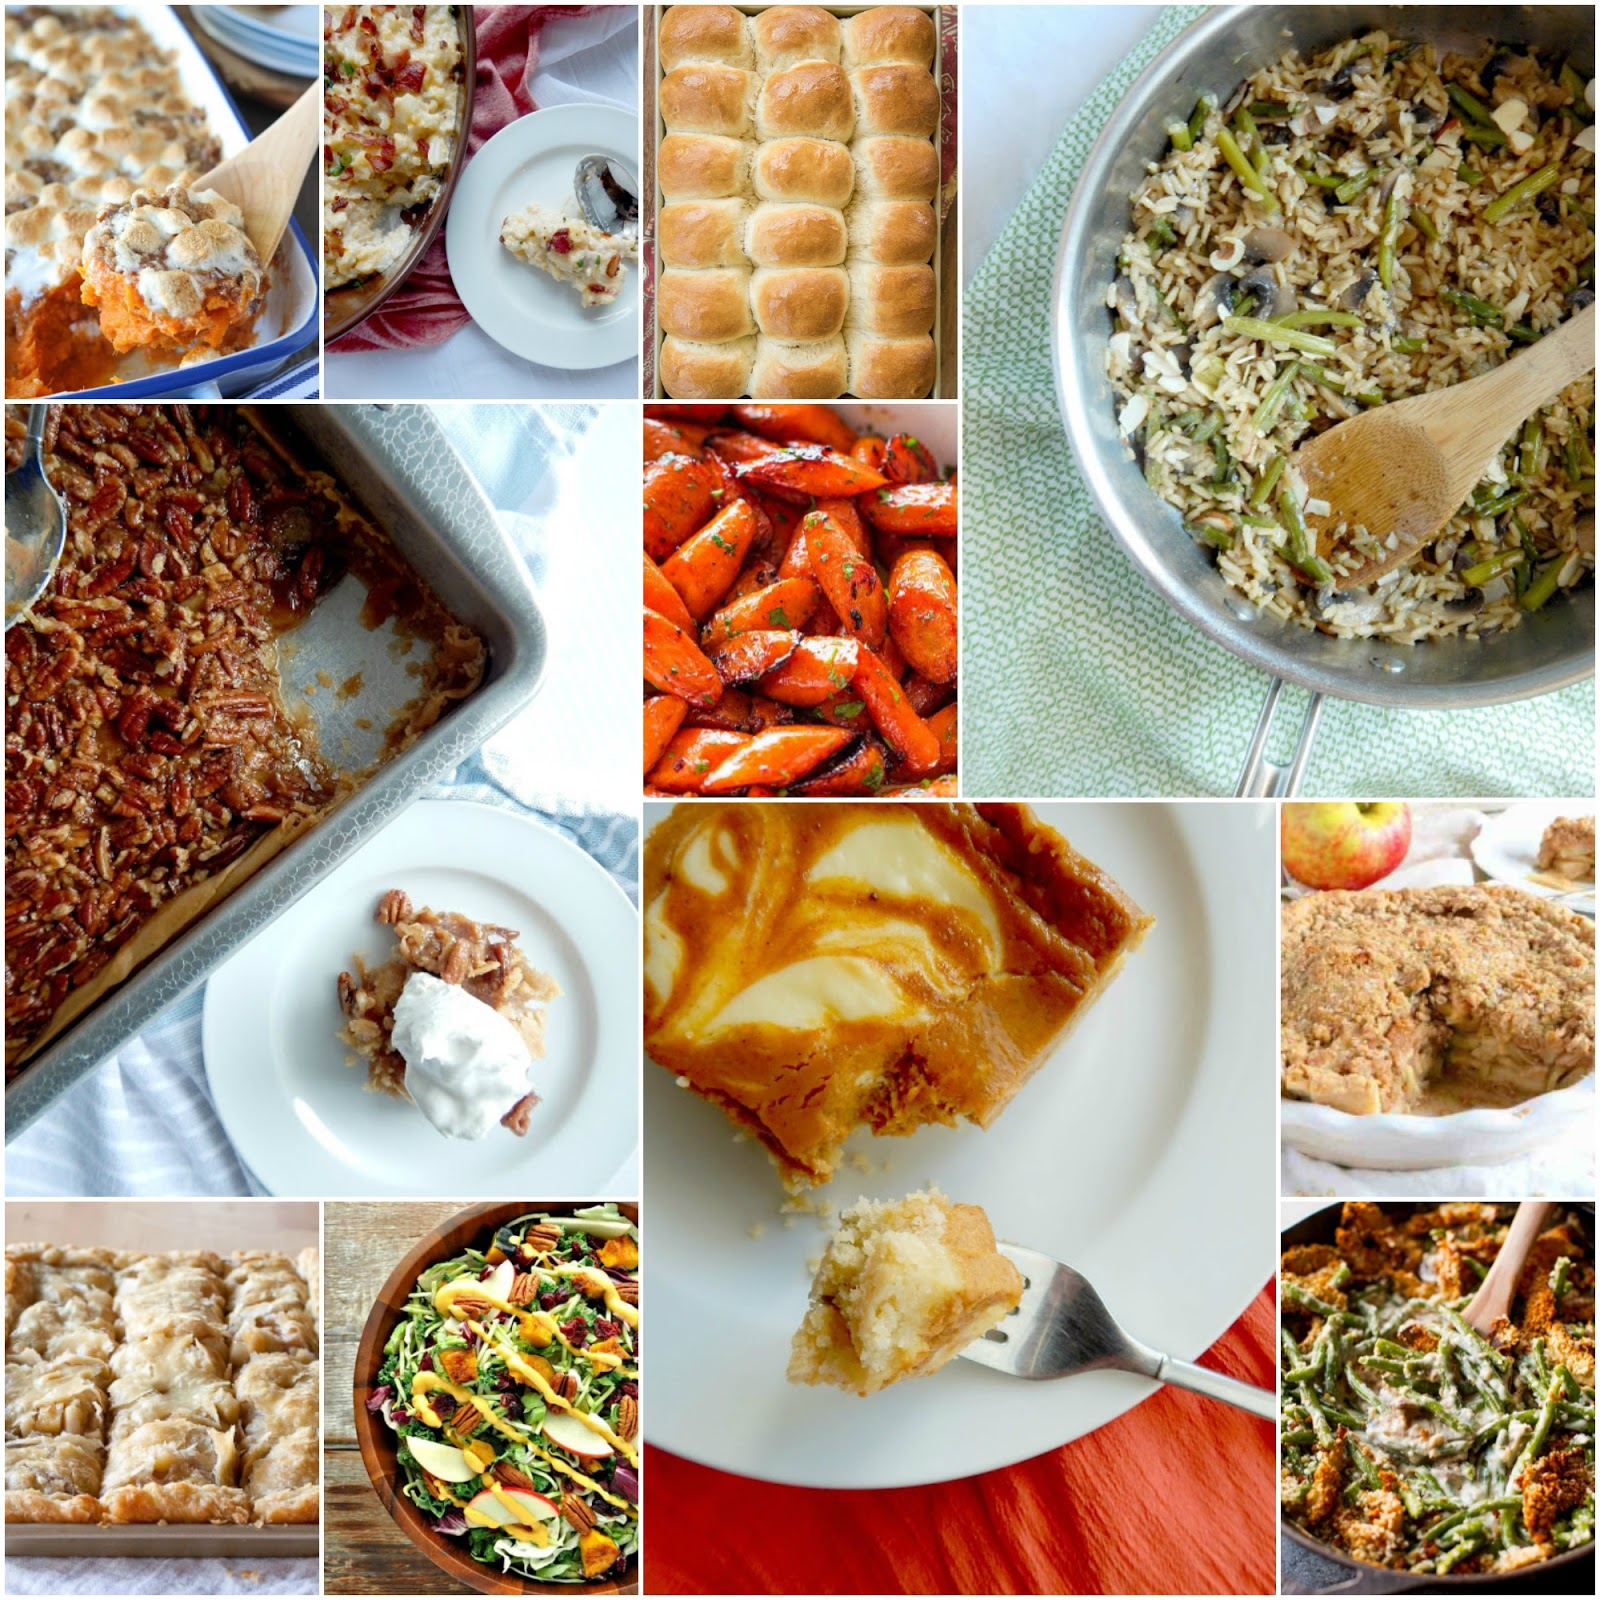 30 Side Dishes And Desserts To Try: Ally's Sweet & Savory Eats: 30 Side Dishes & Desserts For